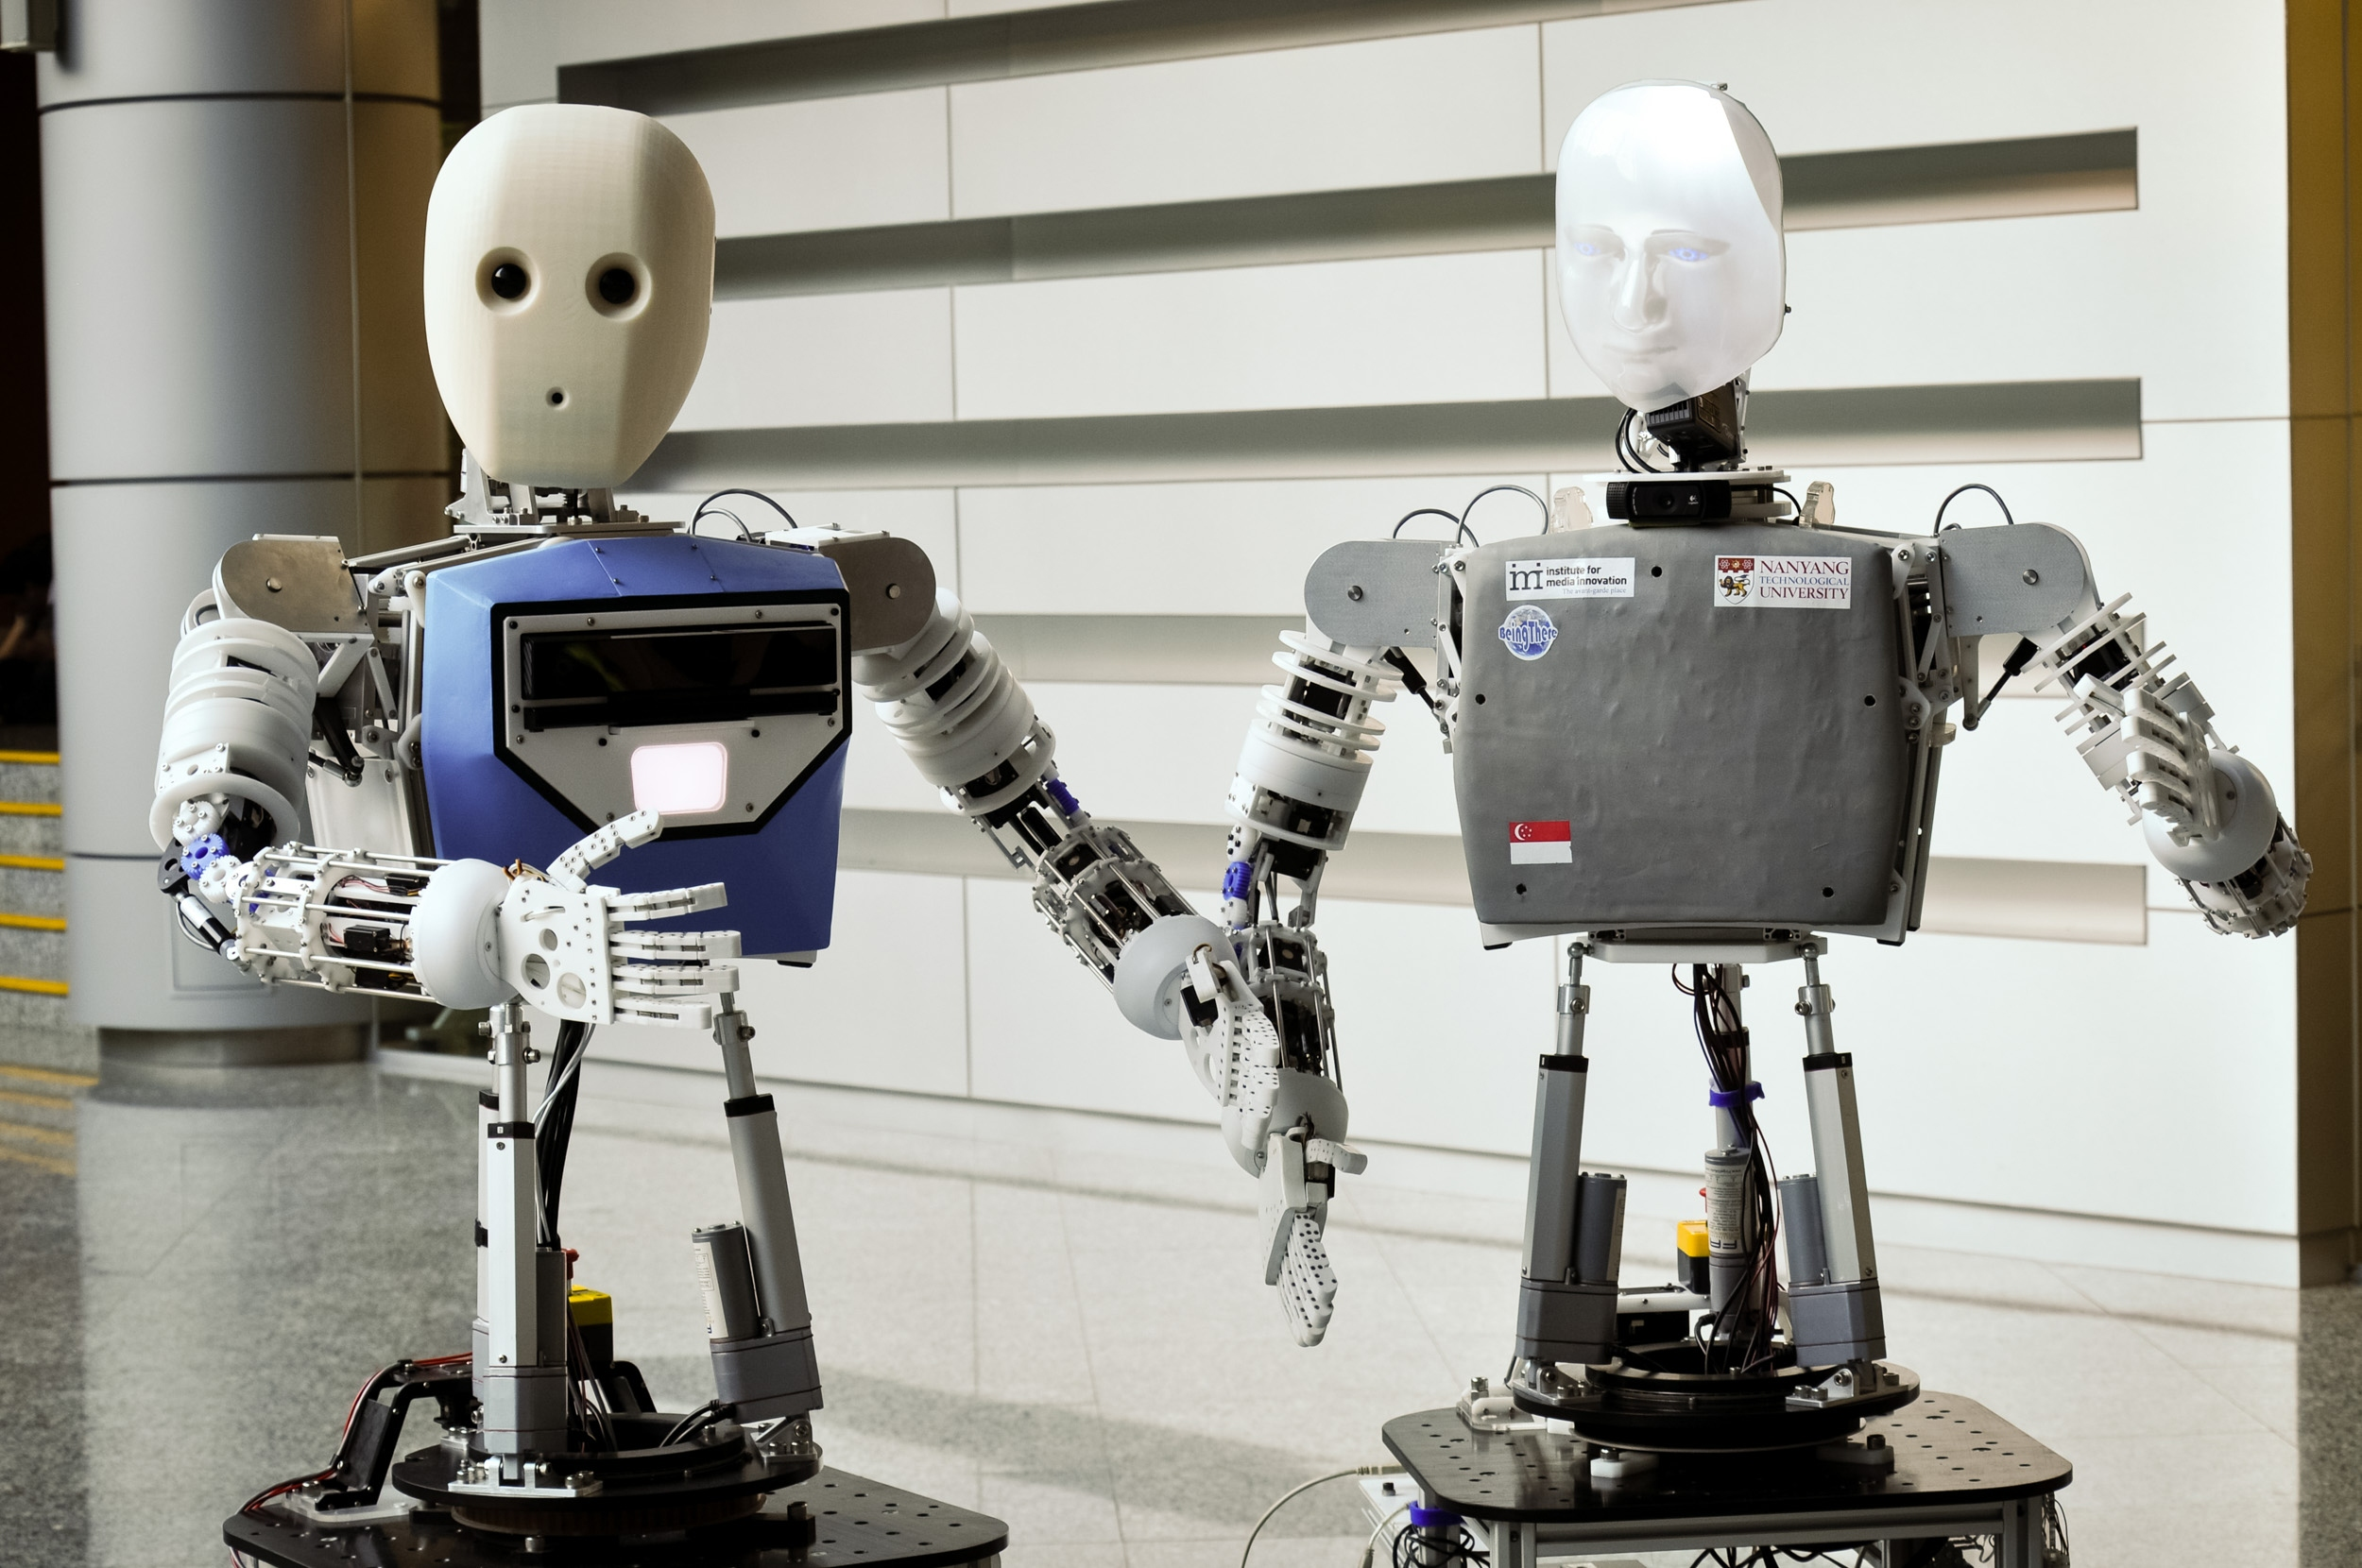 Meet your newest friend, nurse and carer: a robot who reads